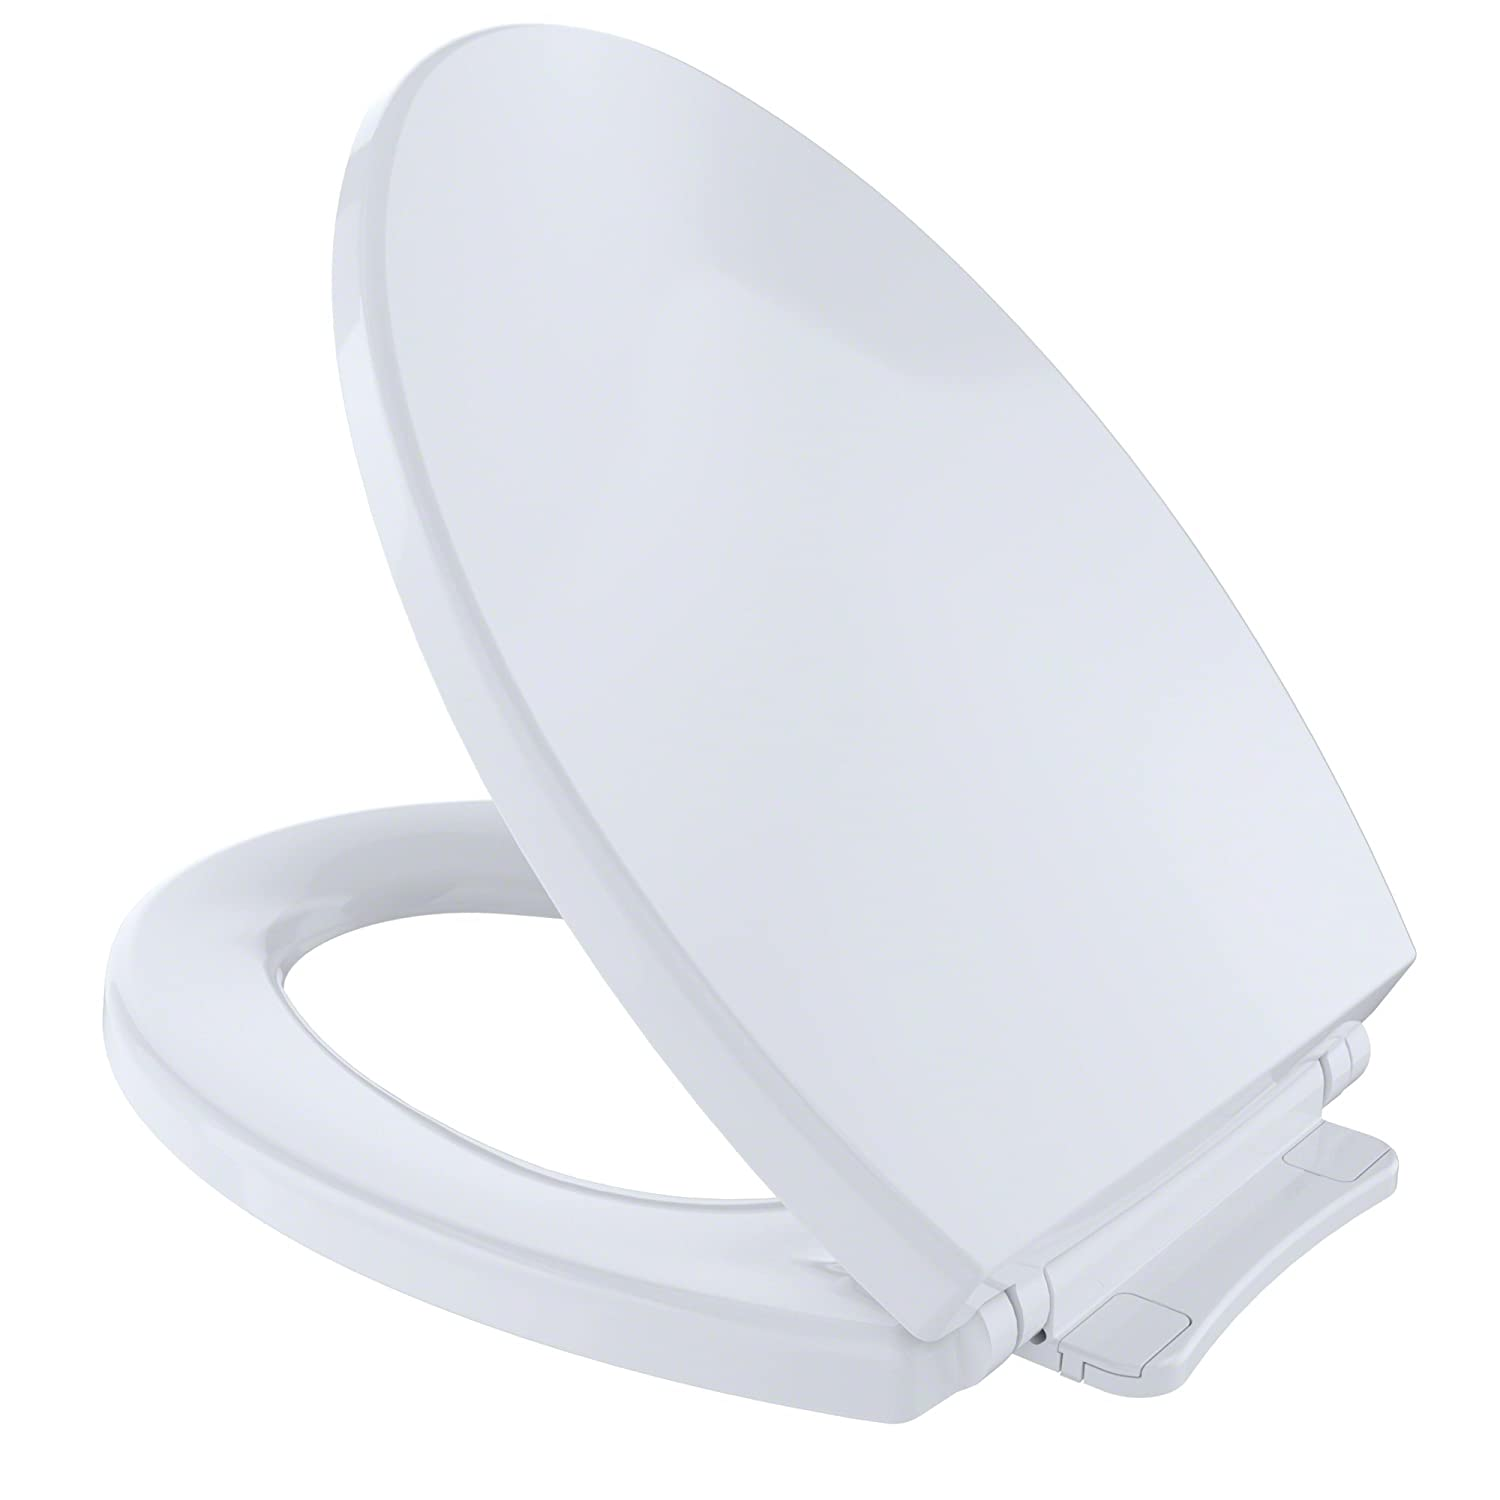 plastic toilet seat covers. Toto SS114 01 SoftClose Elongated Toilet Seat Cover  Cotton White Amazon com